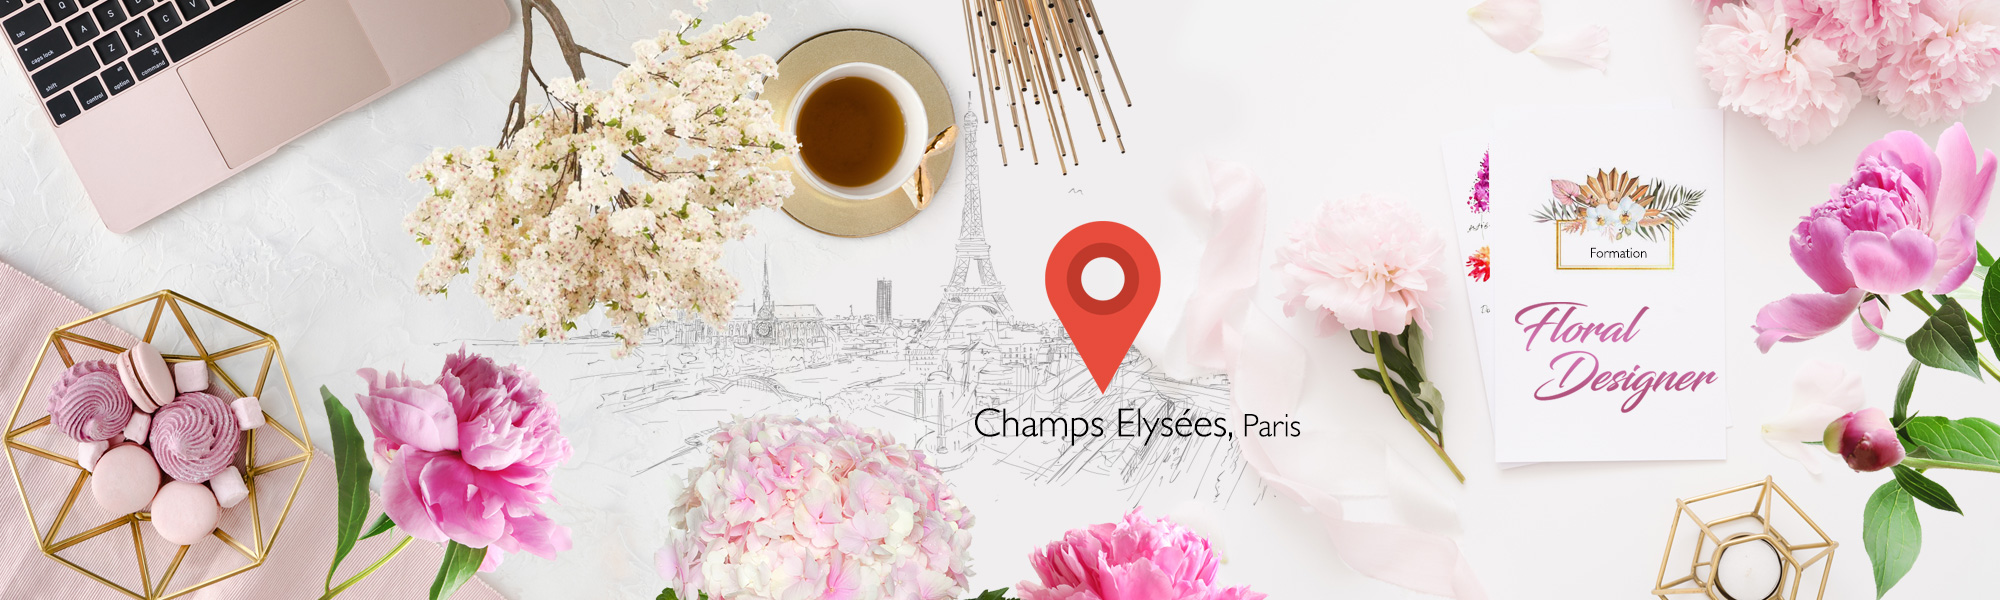 Formation floral designer Paris